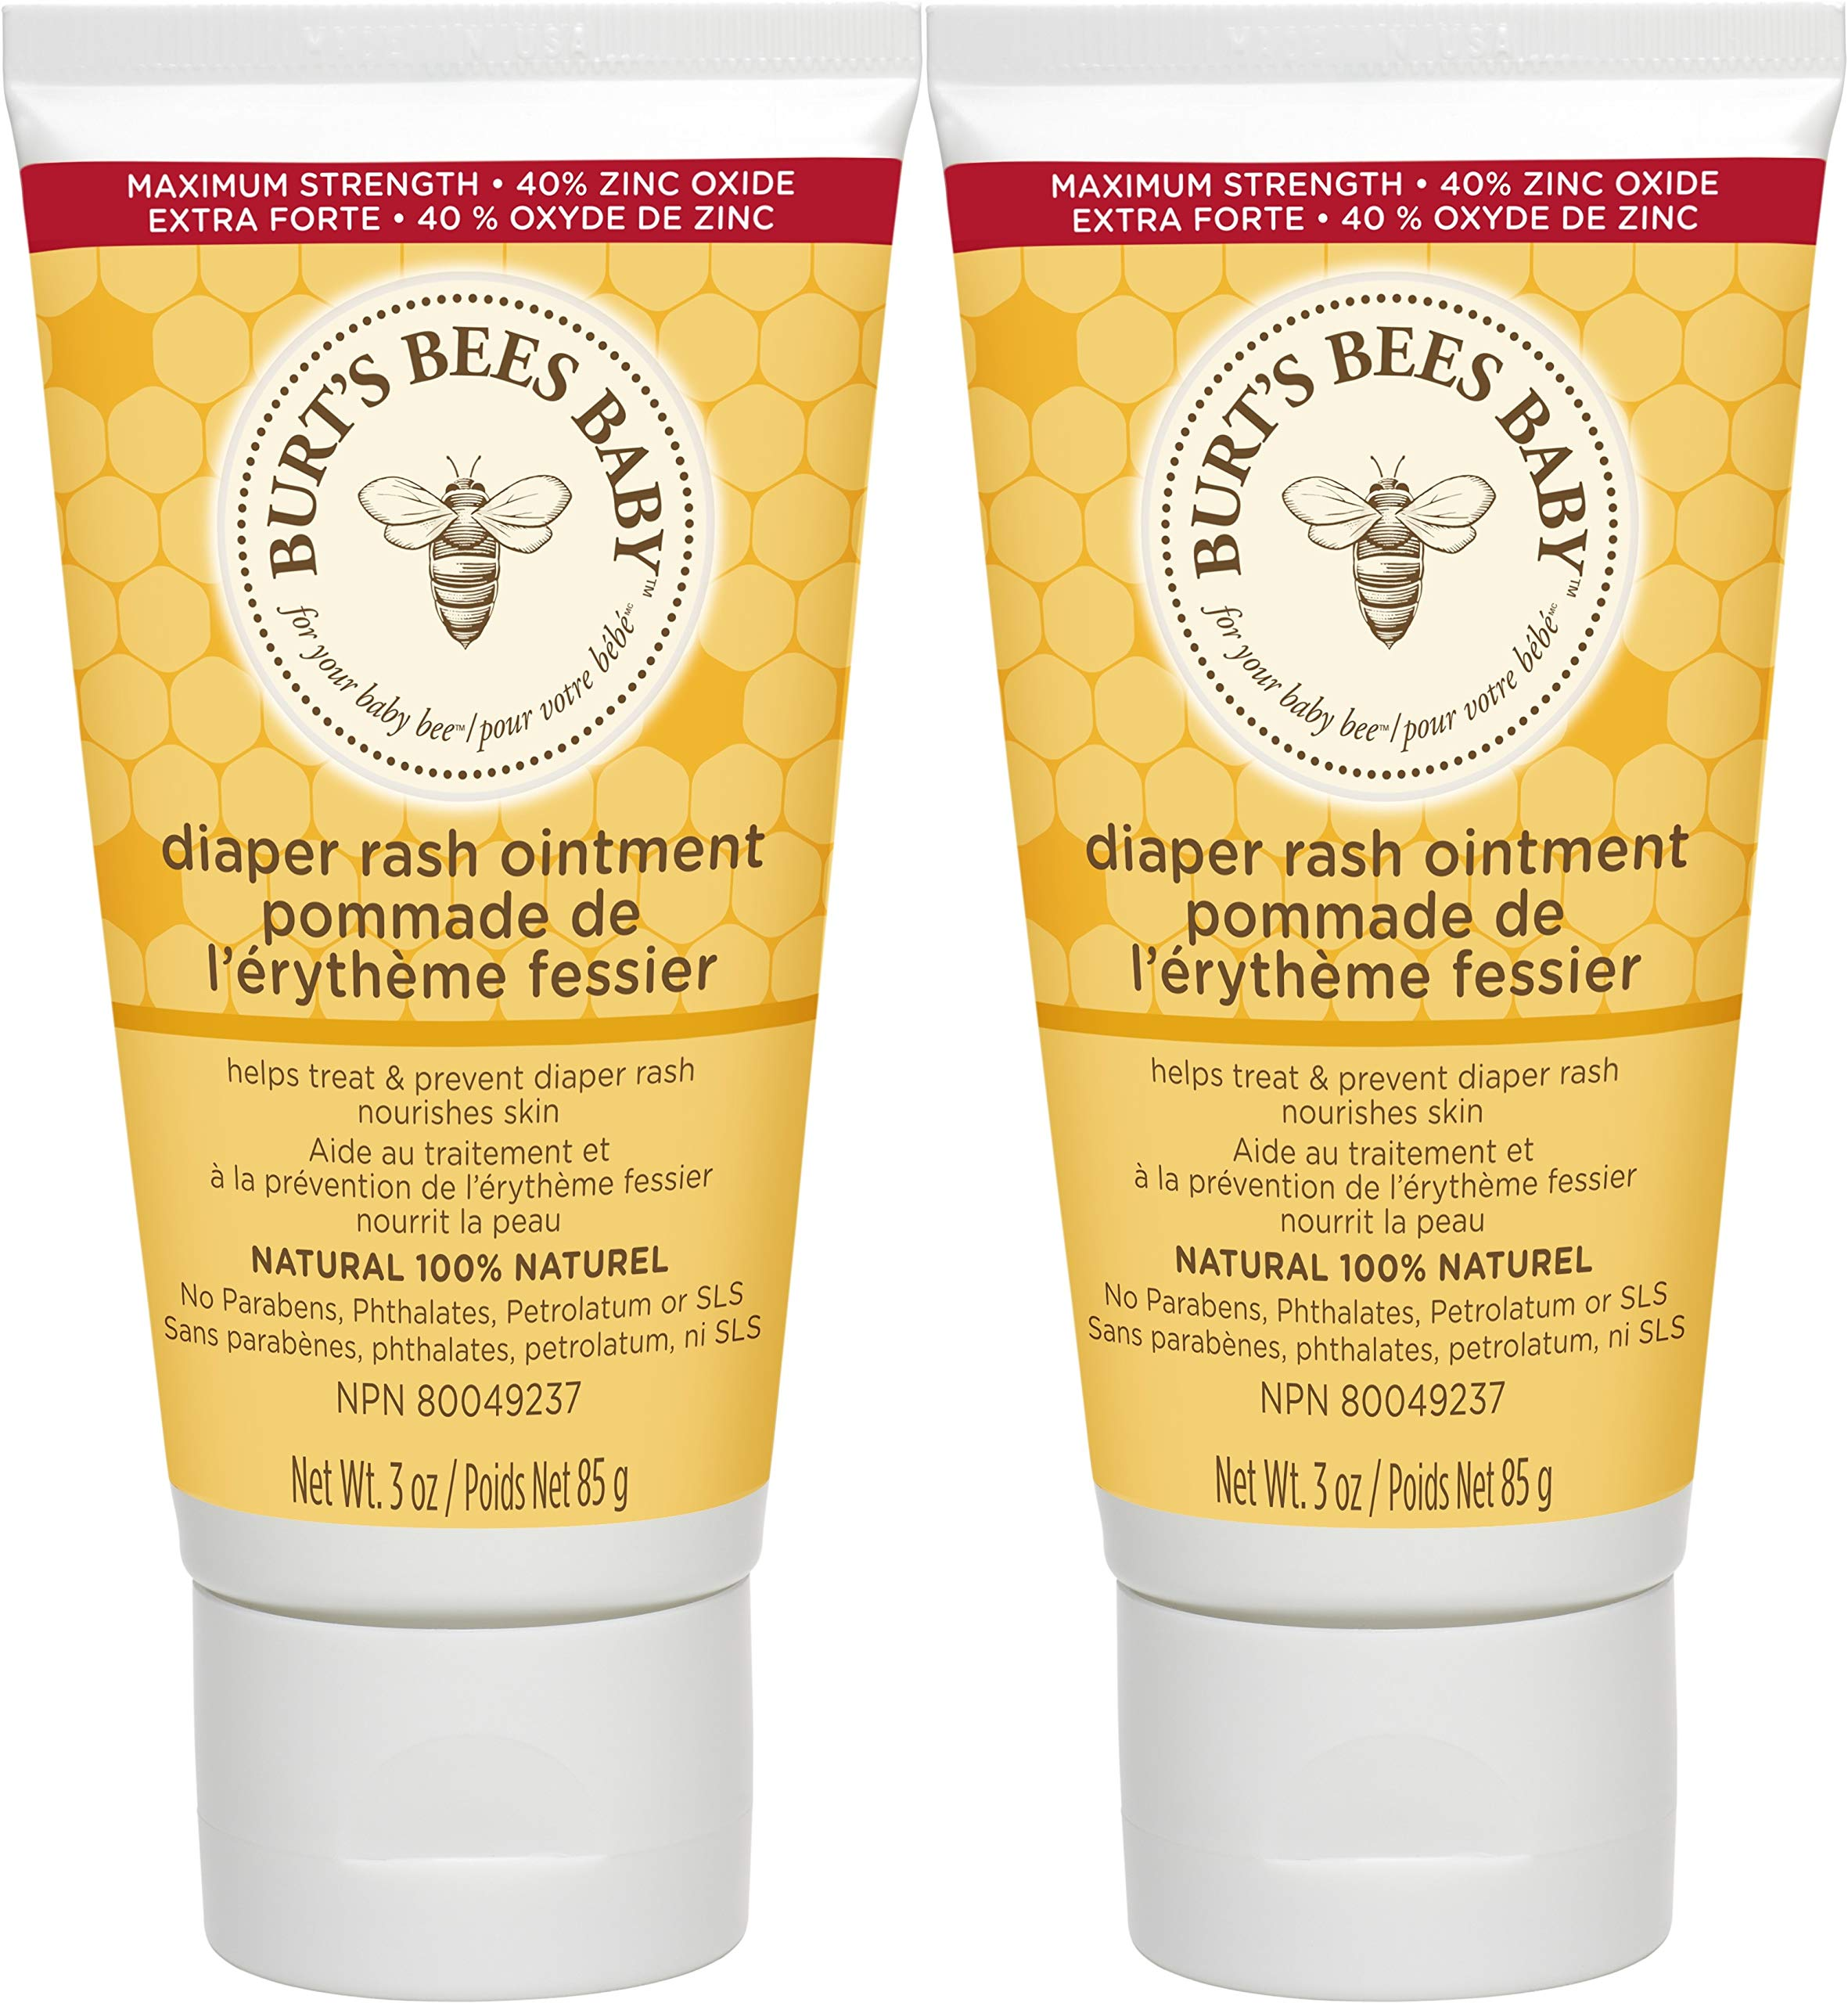 Burt's Bees Baby Diaper Rash Ointment 3 Ounce (Pack of 2) by Burt's Bees Baby